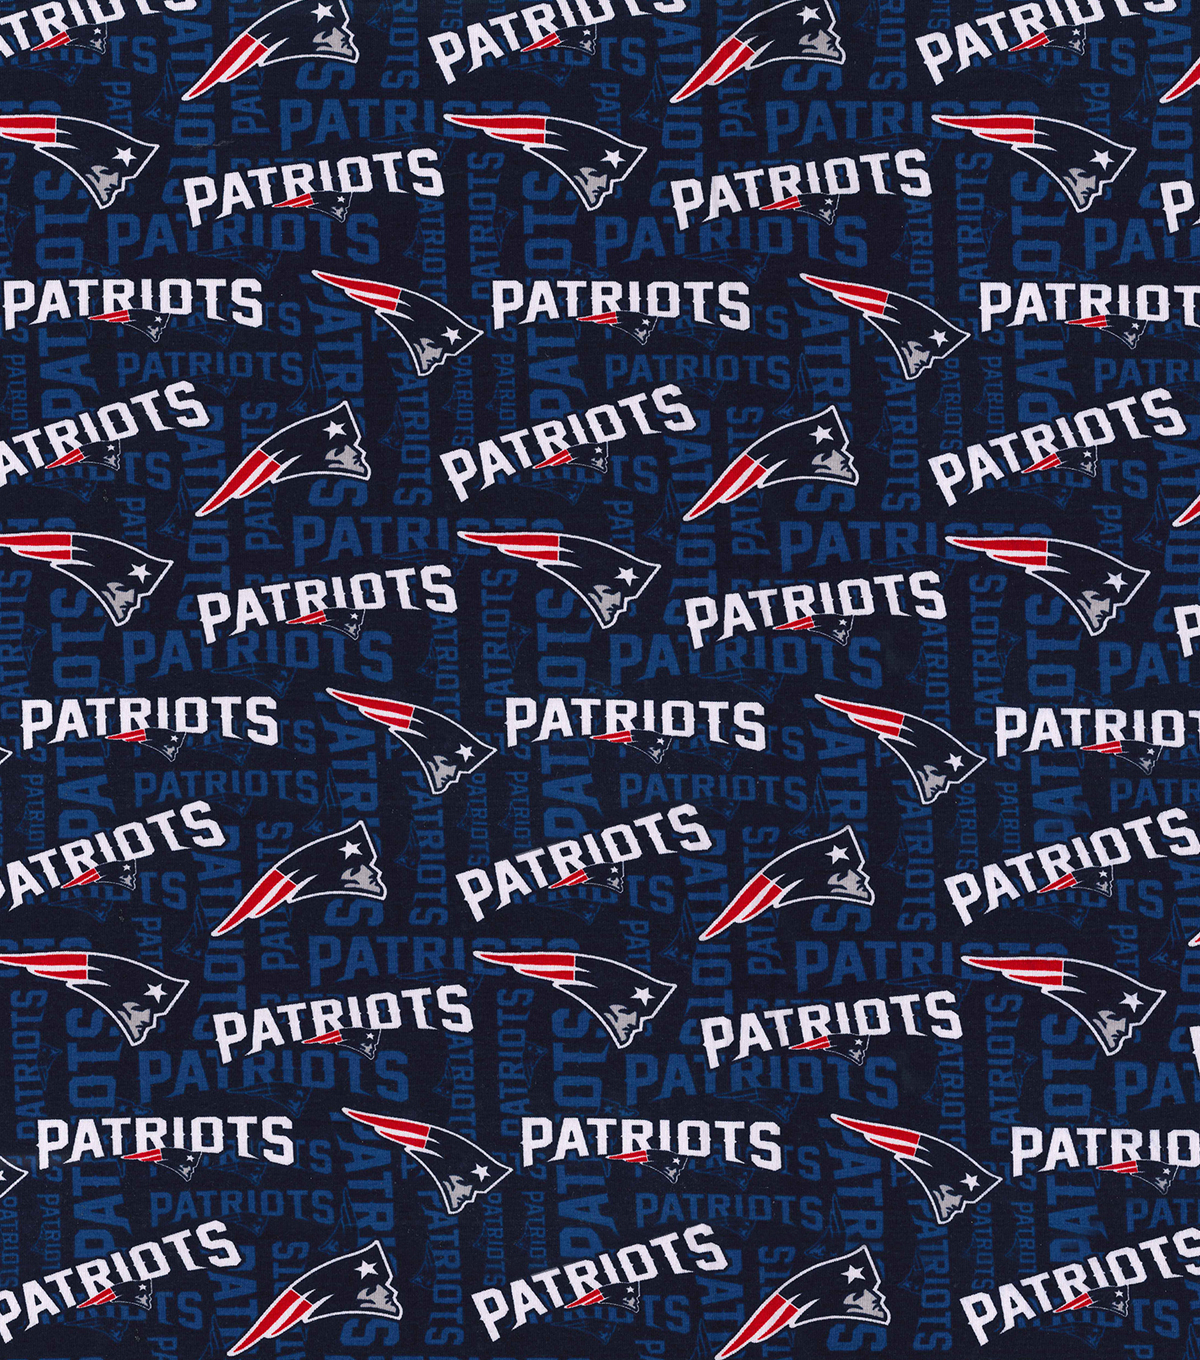 New England Patriots Cotton Knit Fabric